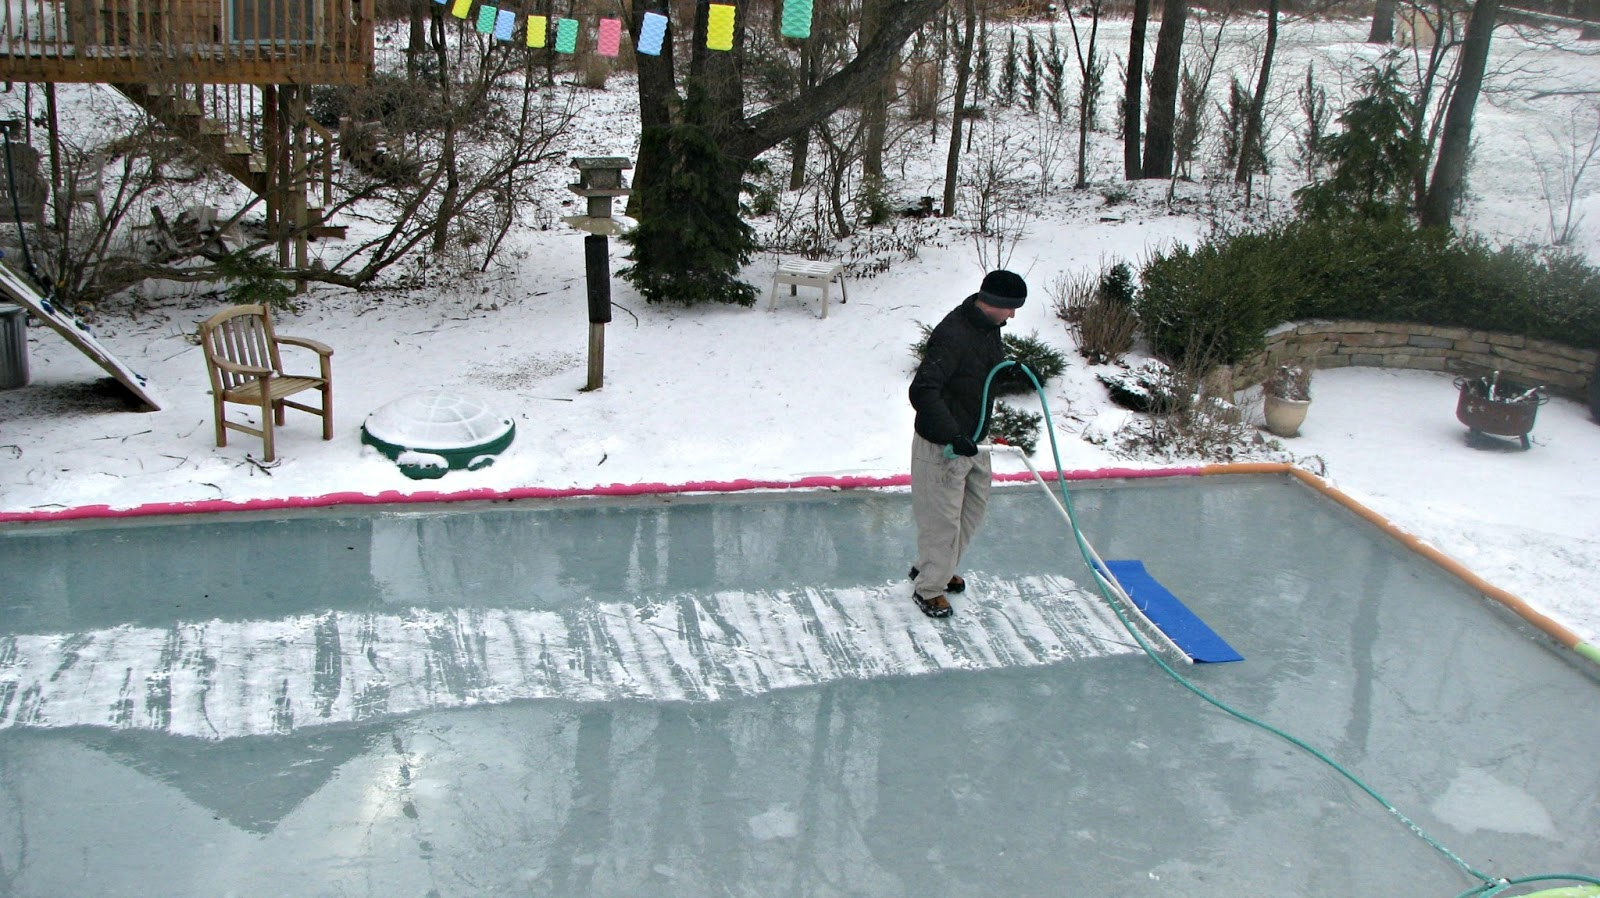 Backyard Rink Zamboni : Backyard Hockey Rink Zamboni Musings from kim k ice time!!